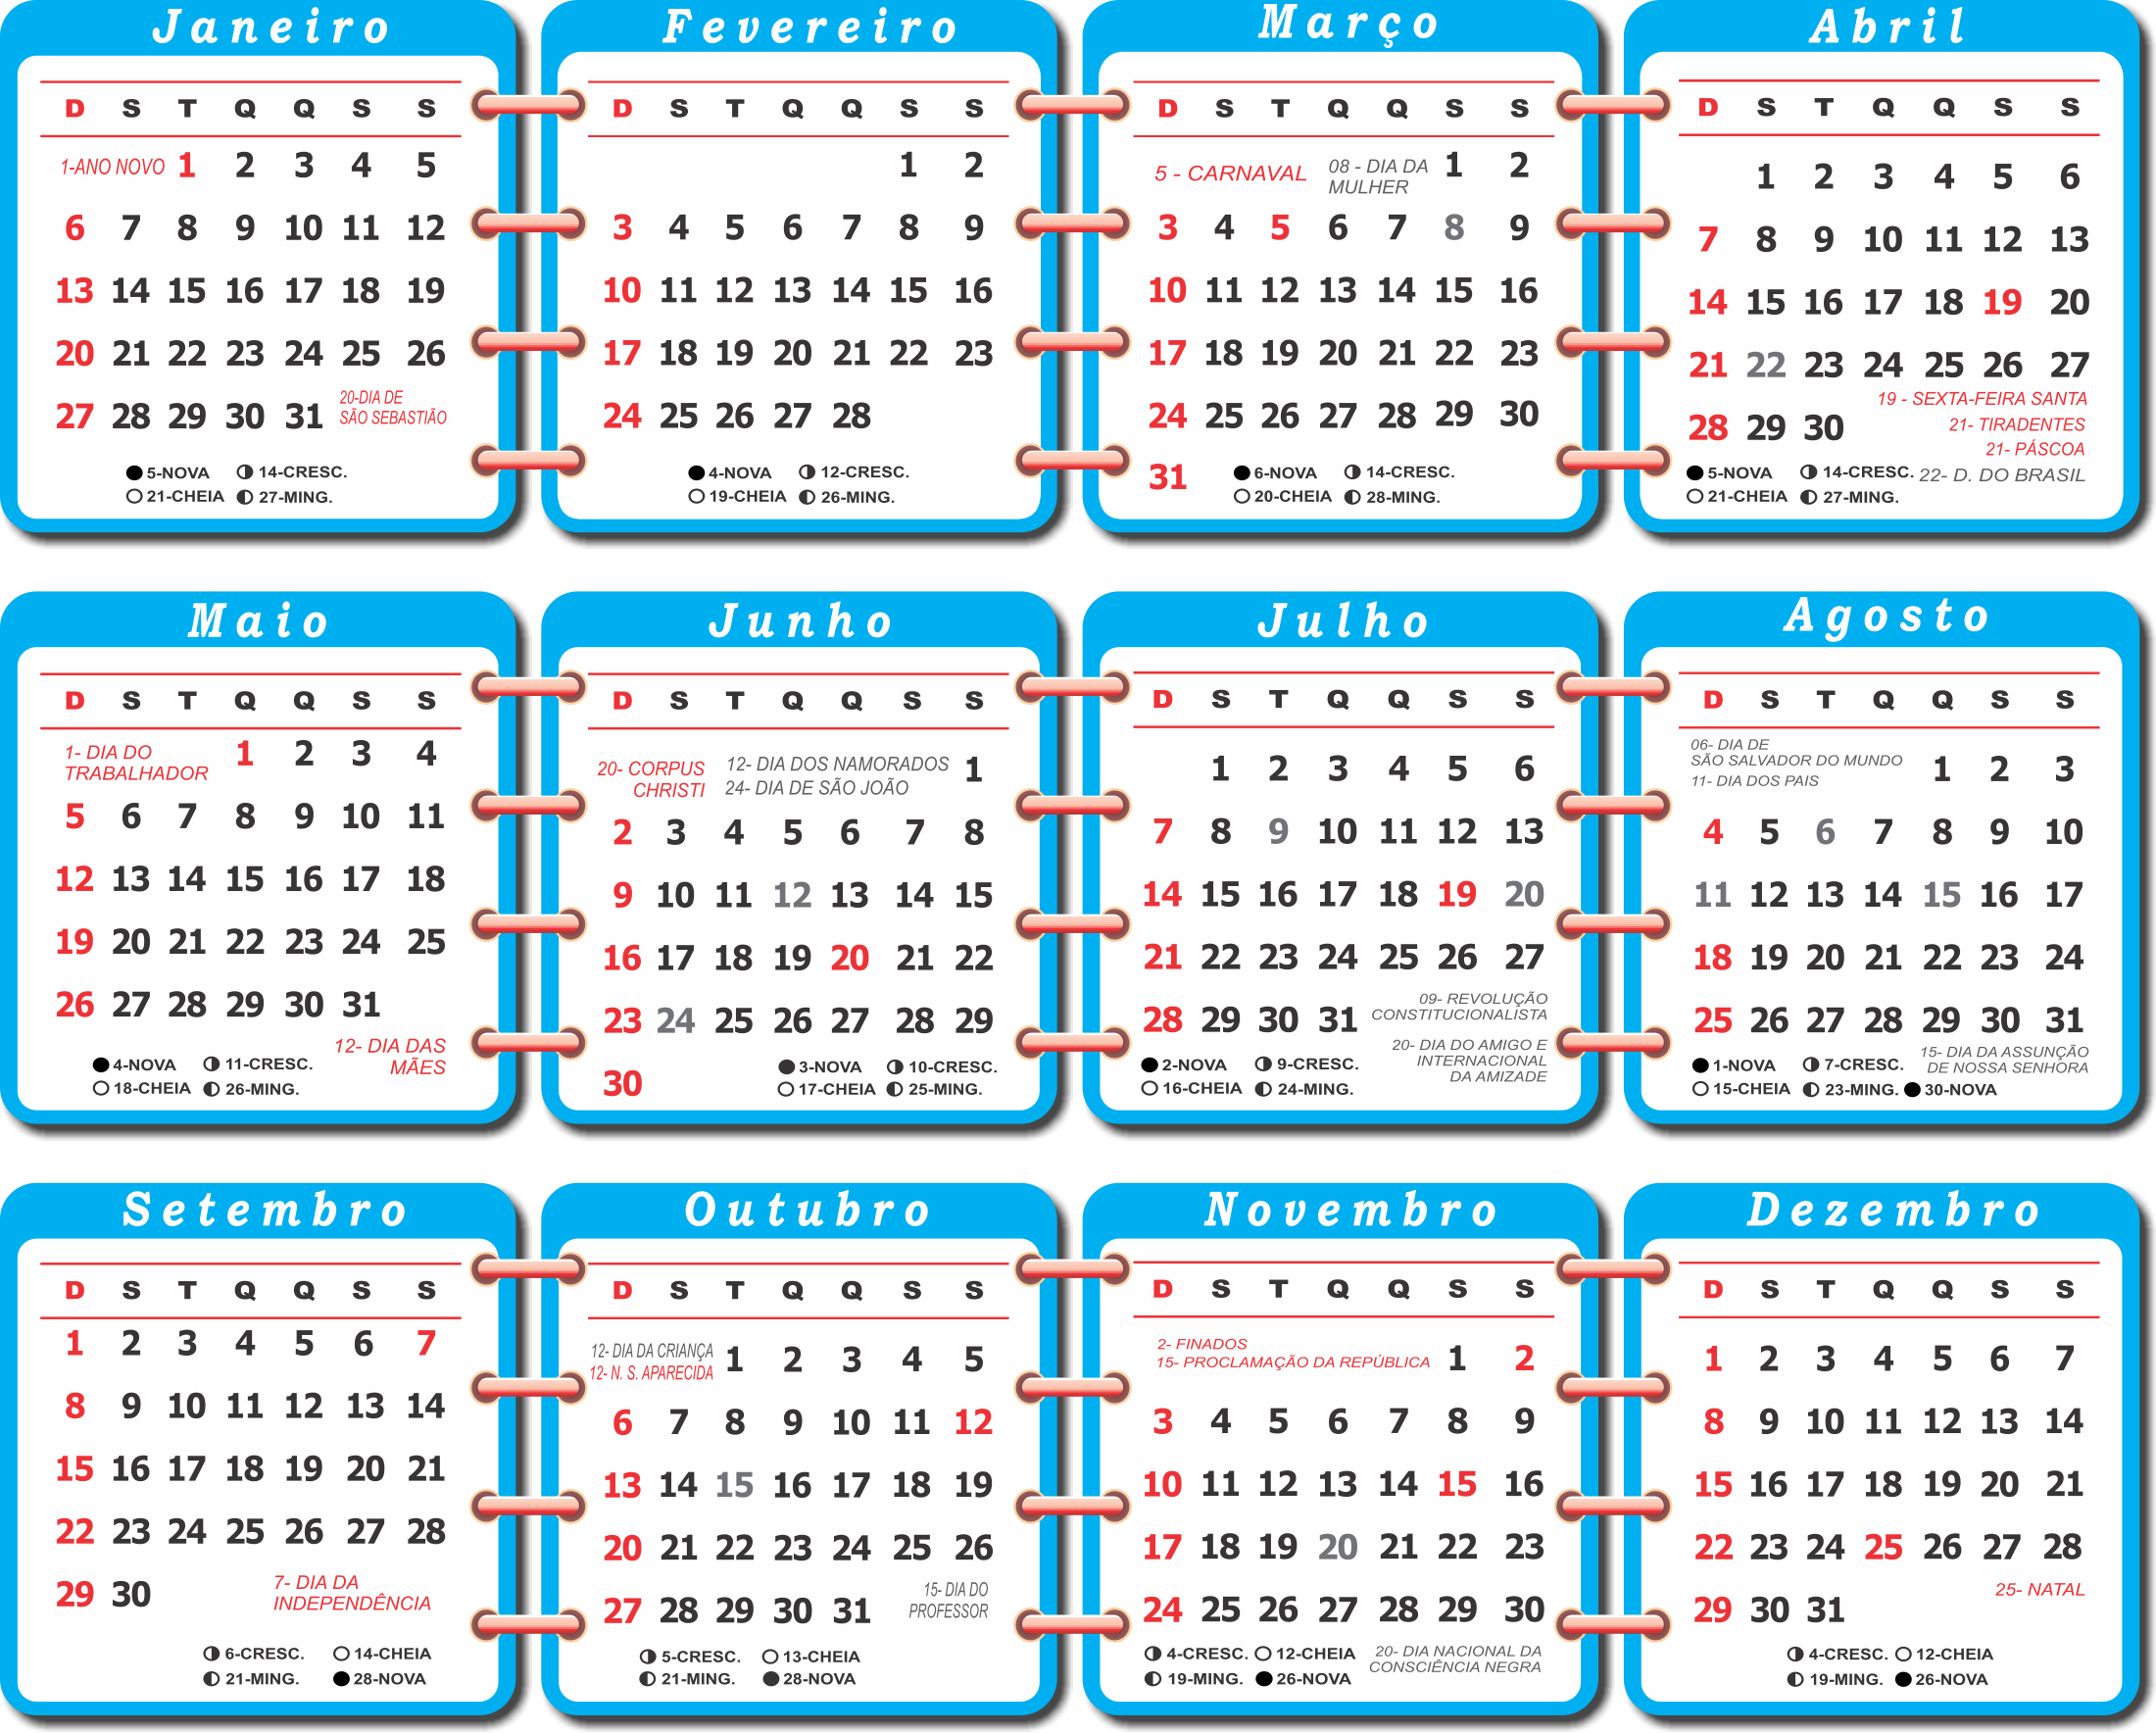 Calendario 206.Download Base Calenda Rio 2019 Azul Calendario 2019 Com